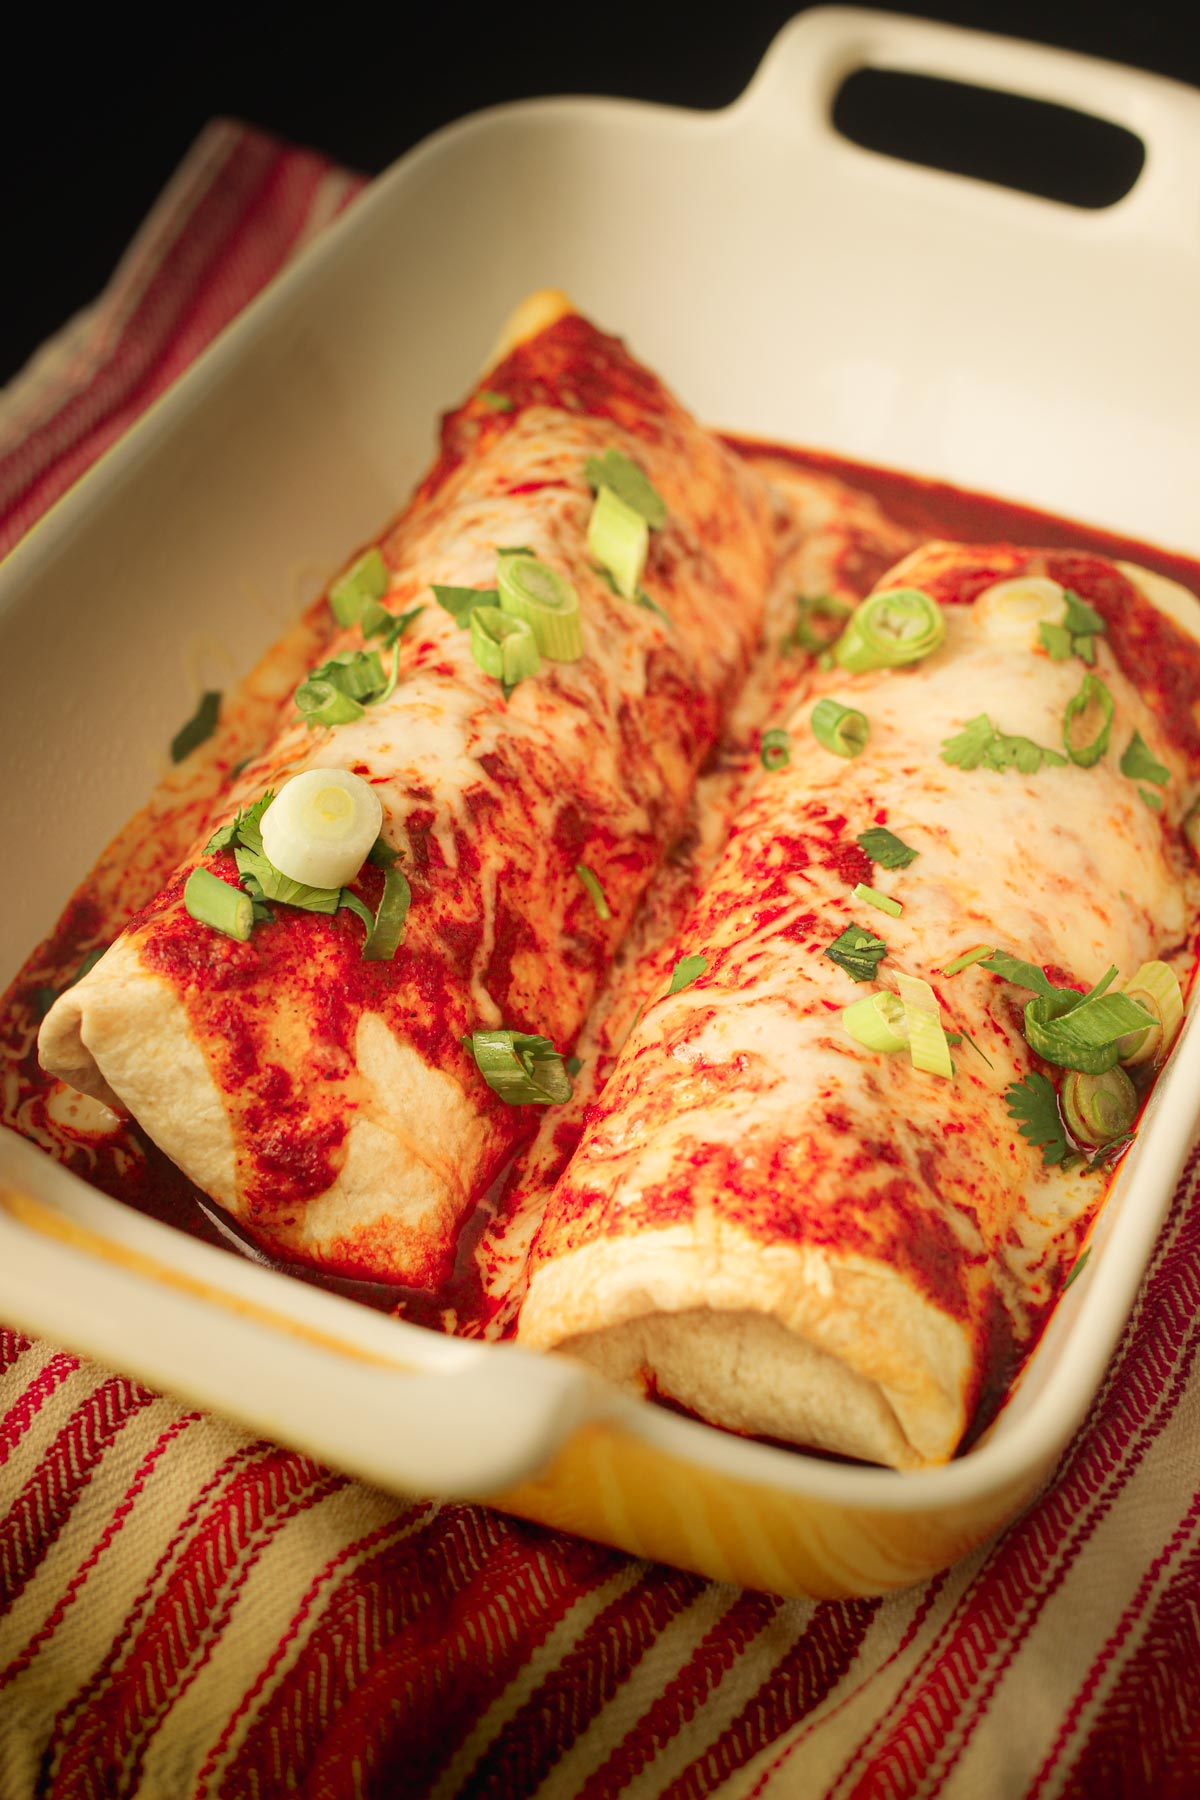 beef chimichangas in baking dish topped with sauce, cheese, and other toppings.